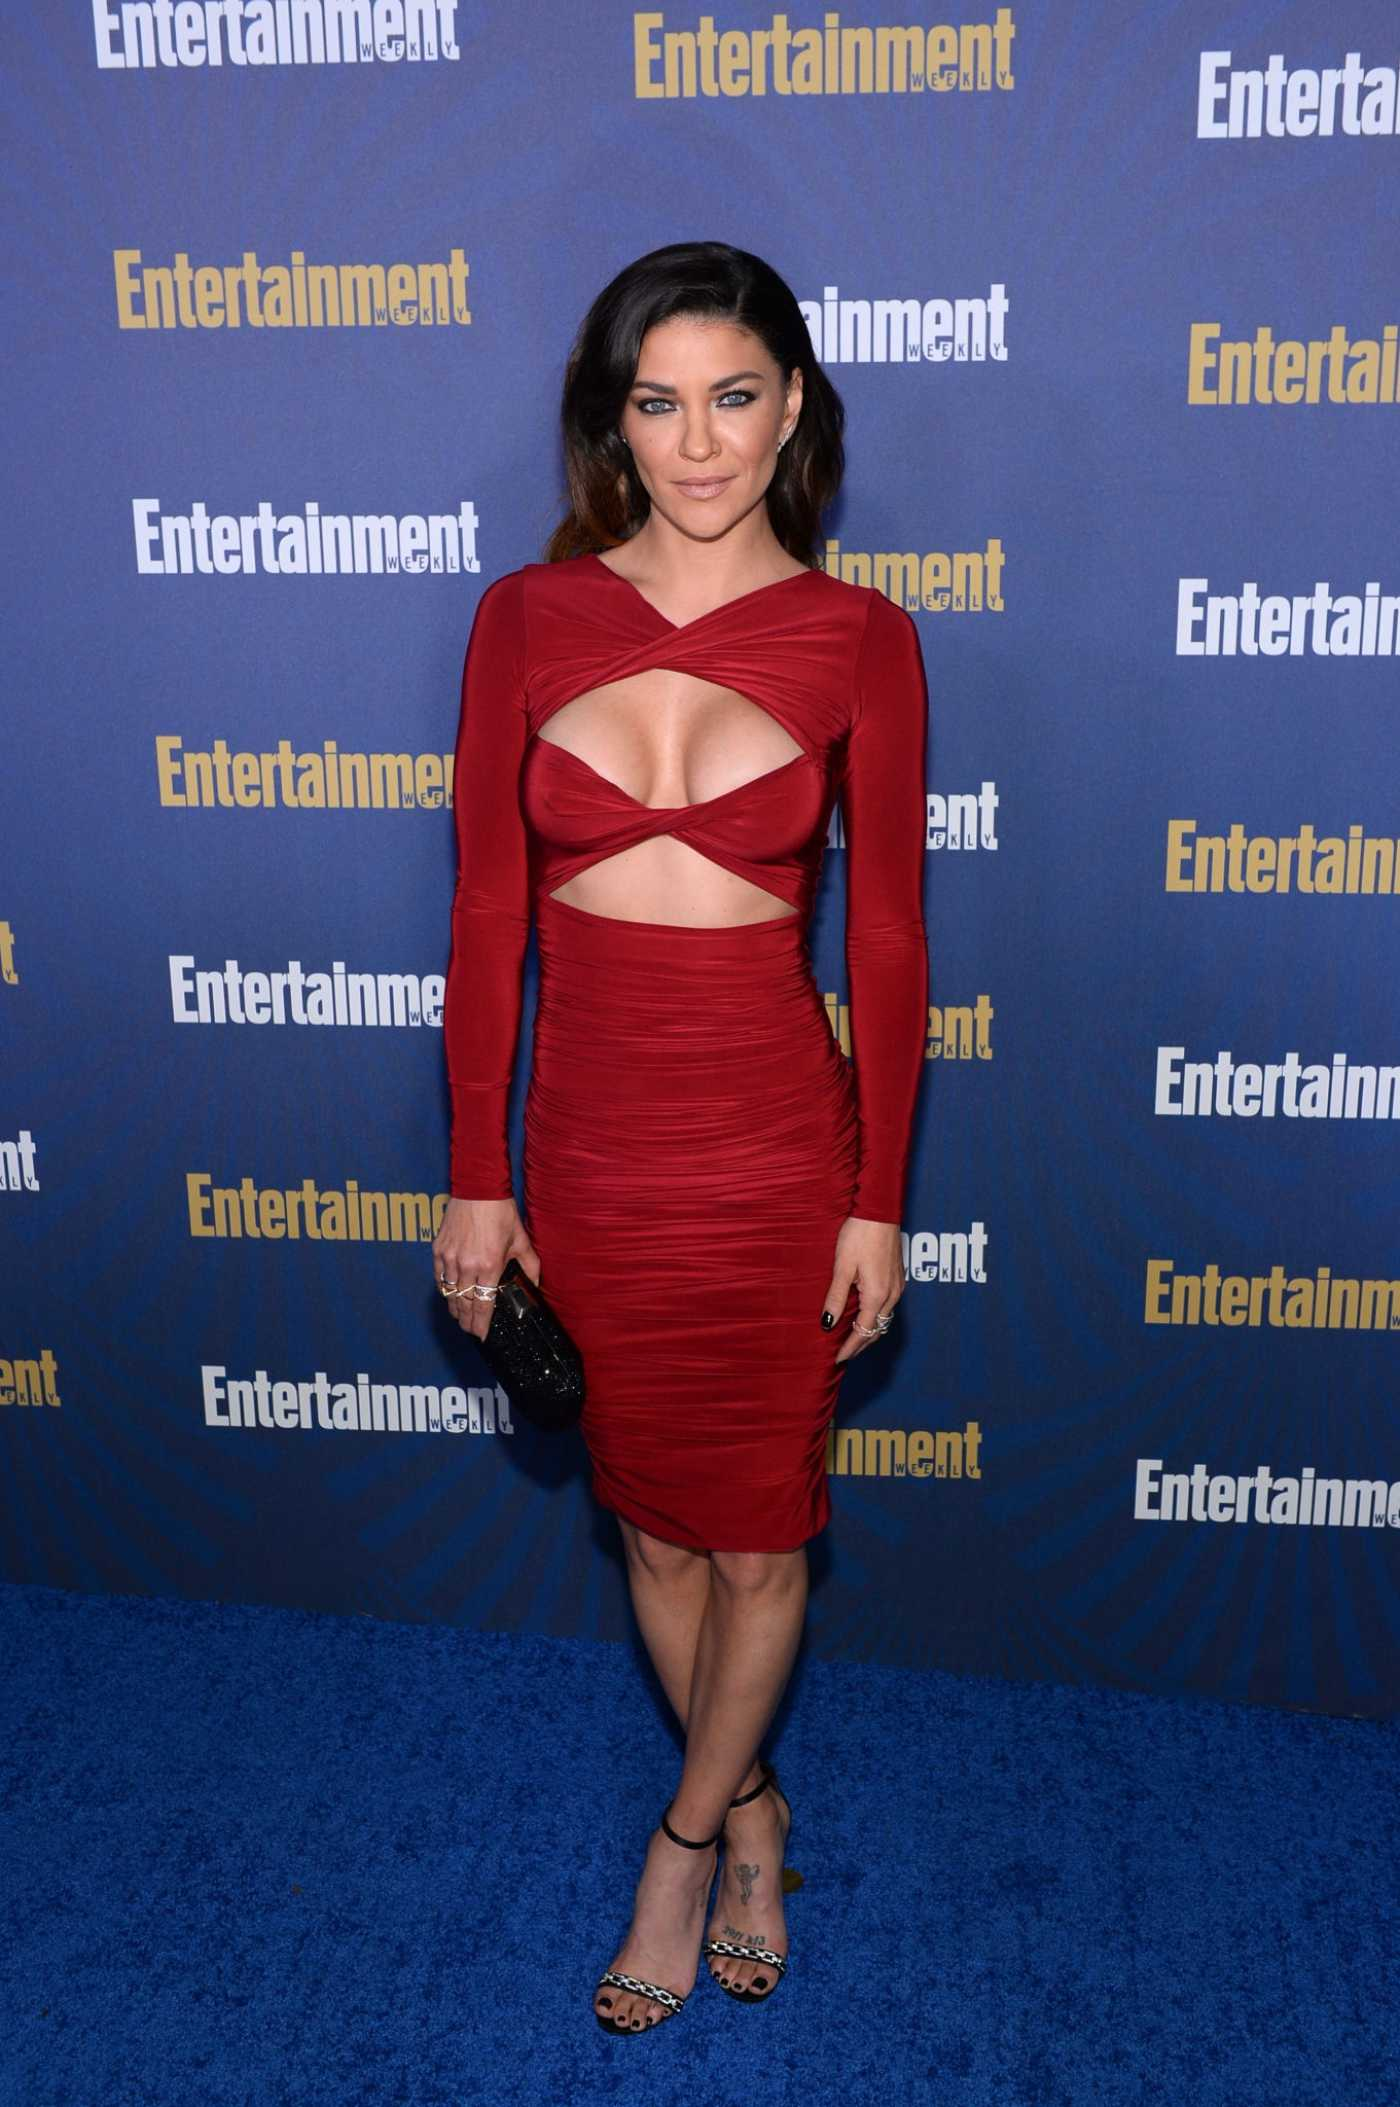 Jessica Szohr Attends 2020 Entertainment Weekly Celebrates the SAG Award Nominees in Los Angeles 01/18/2020